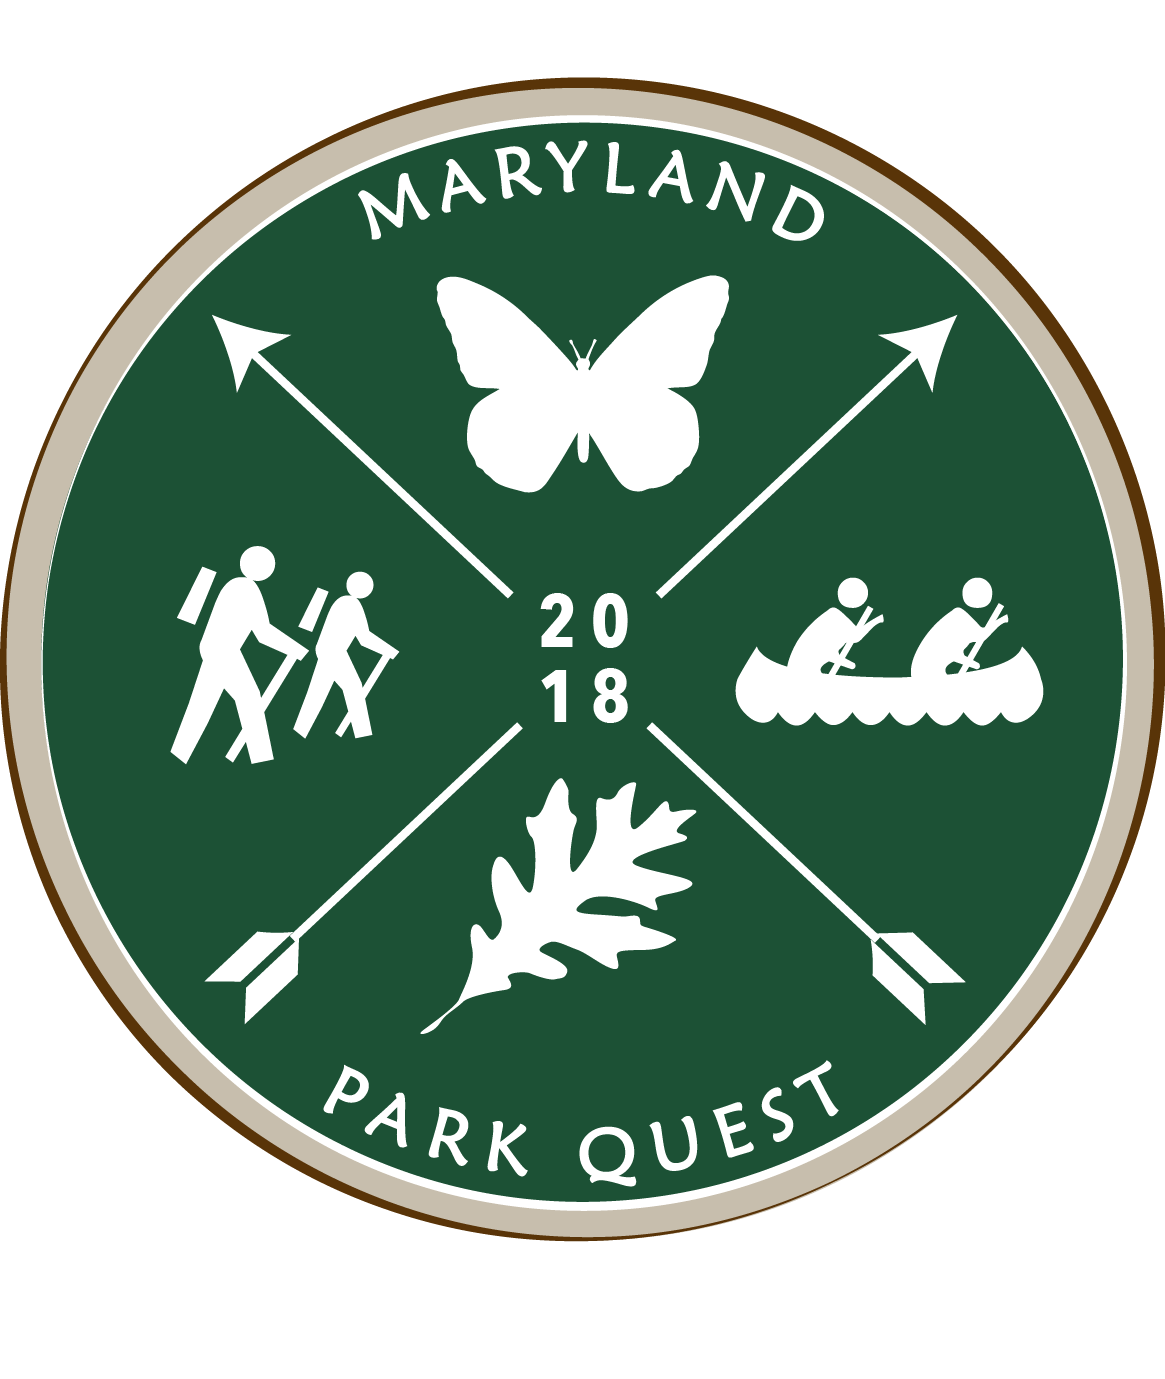 Park Quest Family State Parks Program Taking Registrations